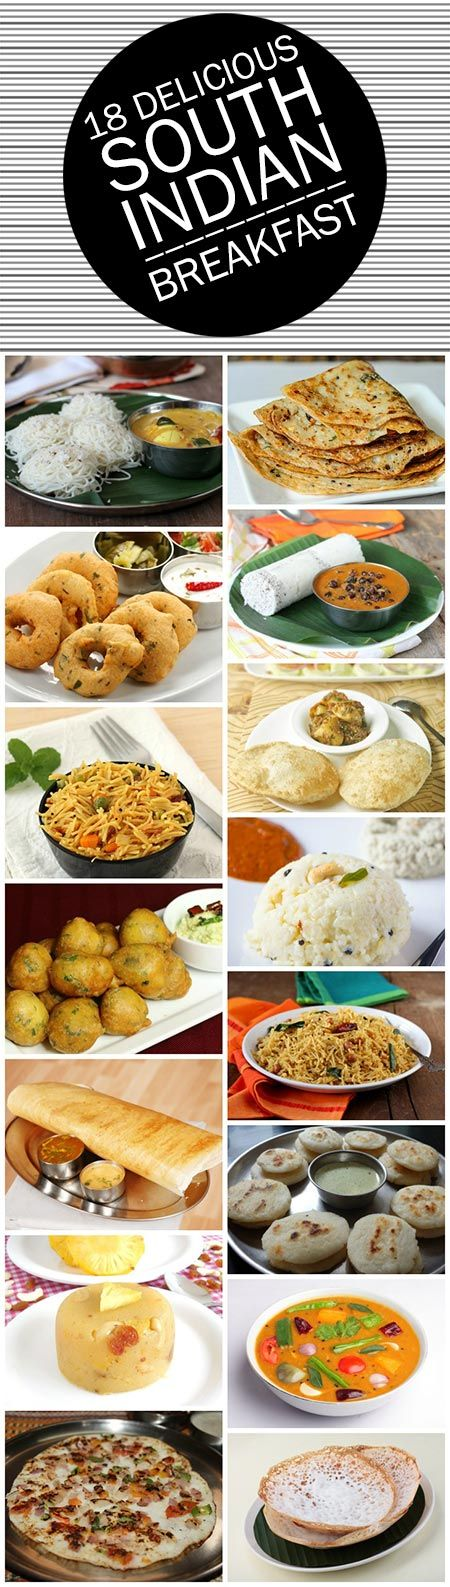 18 Delicious South Indian Breakfast Recipes You Must Try | A lot of these are naturally gluten-free!